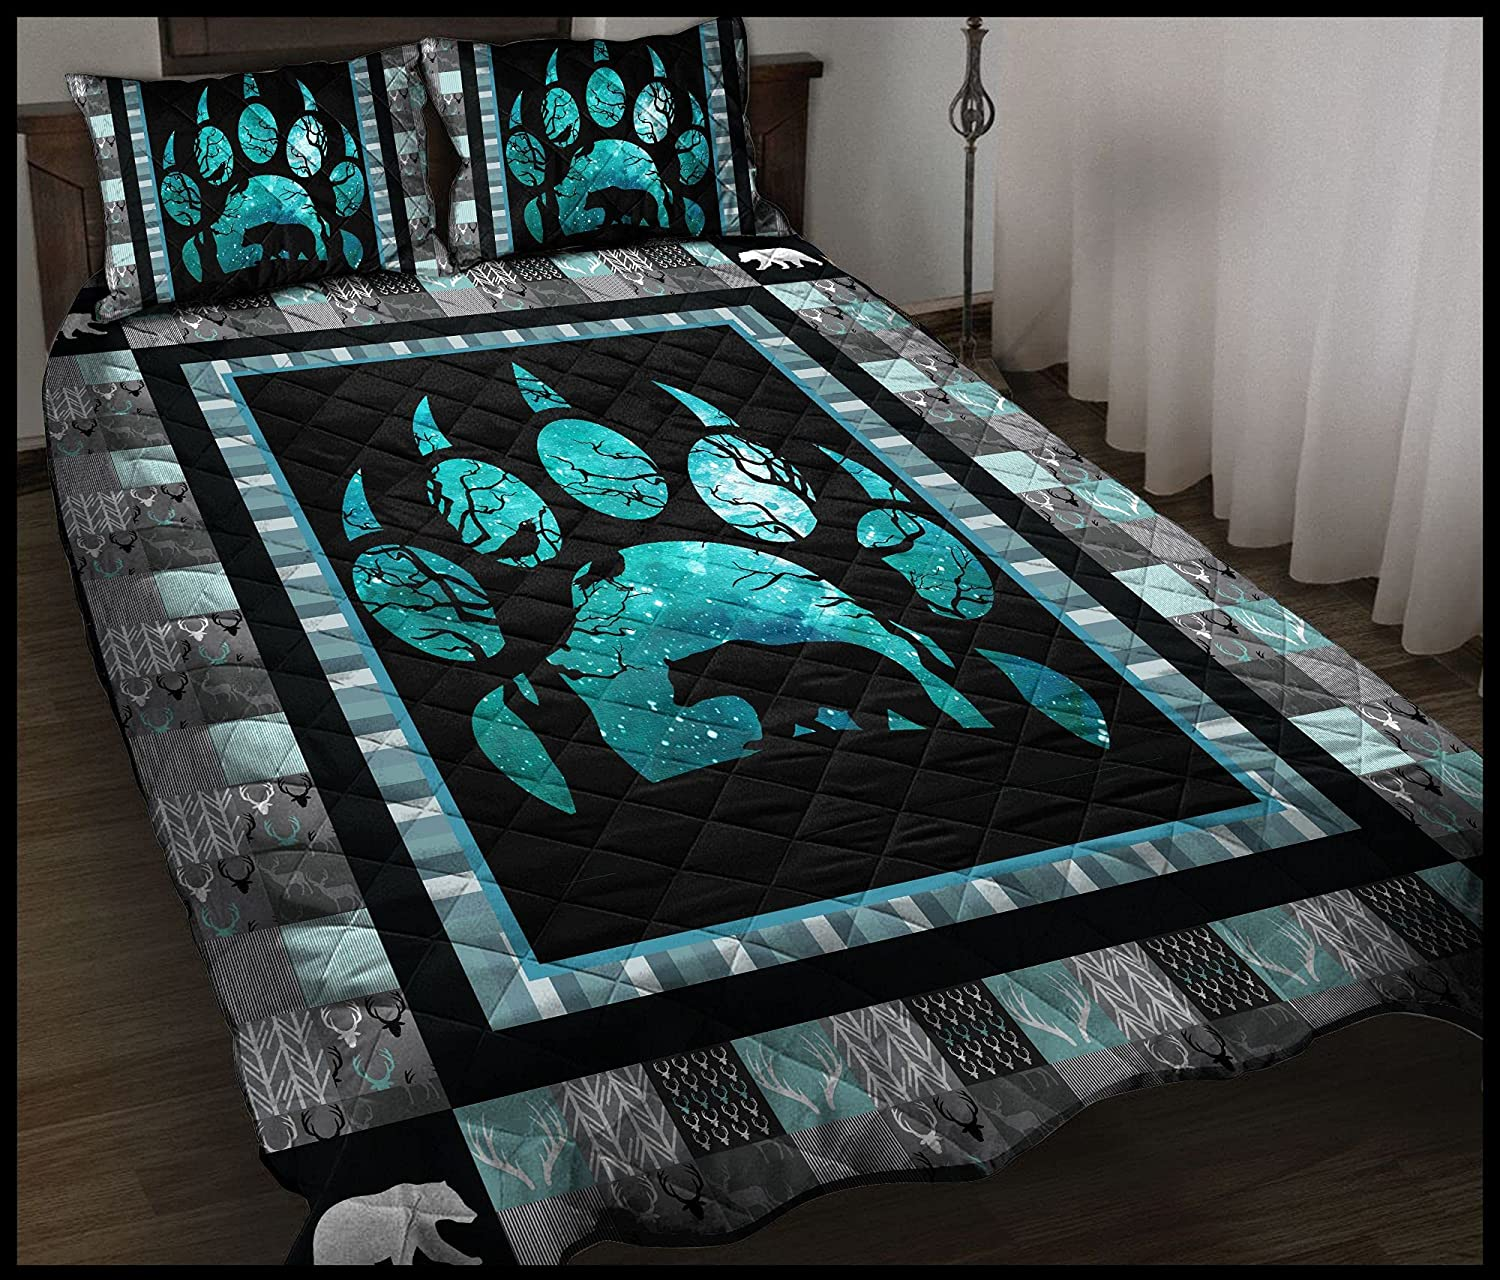 Bear Pawprint T284 Quilt Bedset Max 82% OFF - Washington Mall All Seas for Suitable